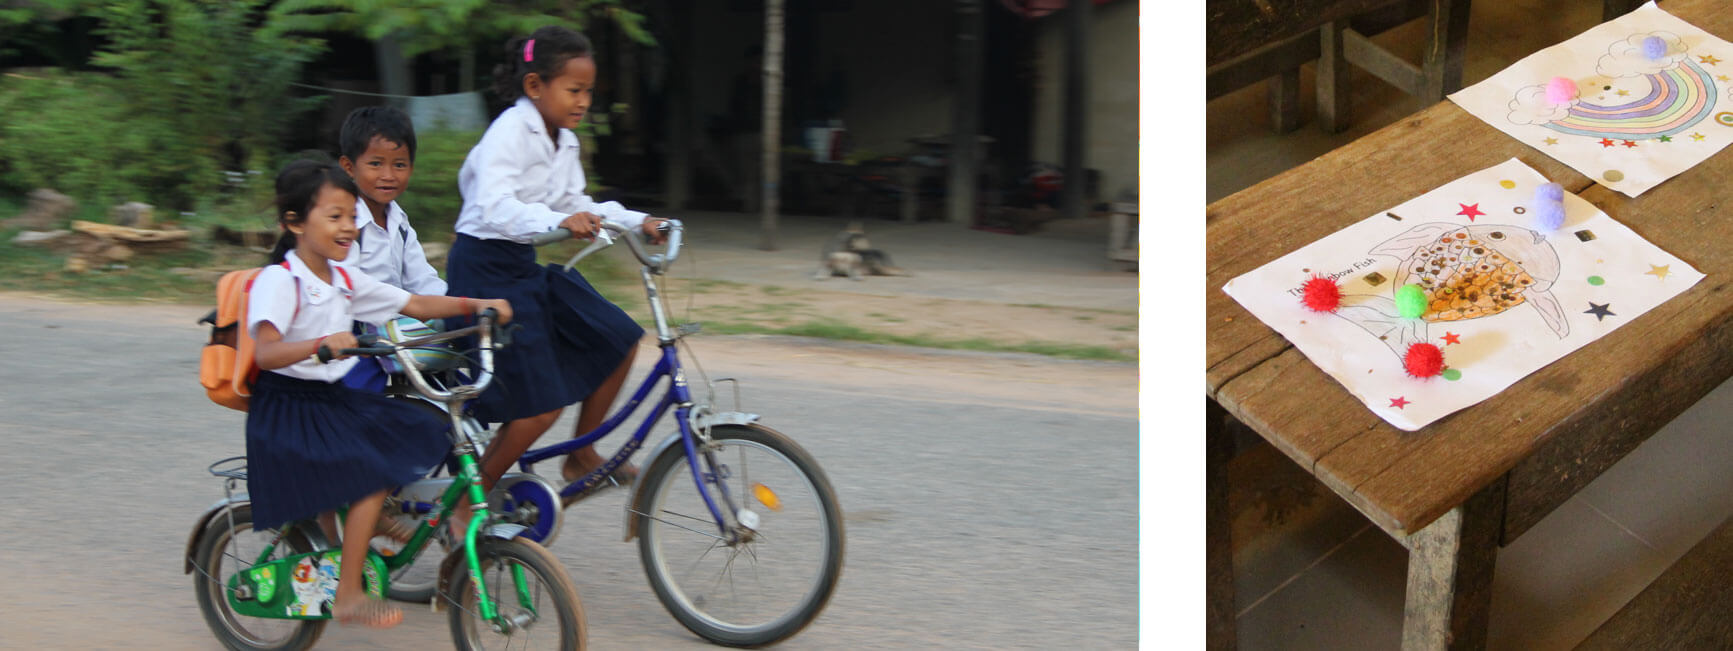 Pupils on a bycicle- Siem Reap